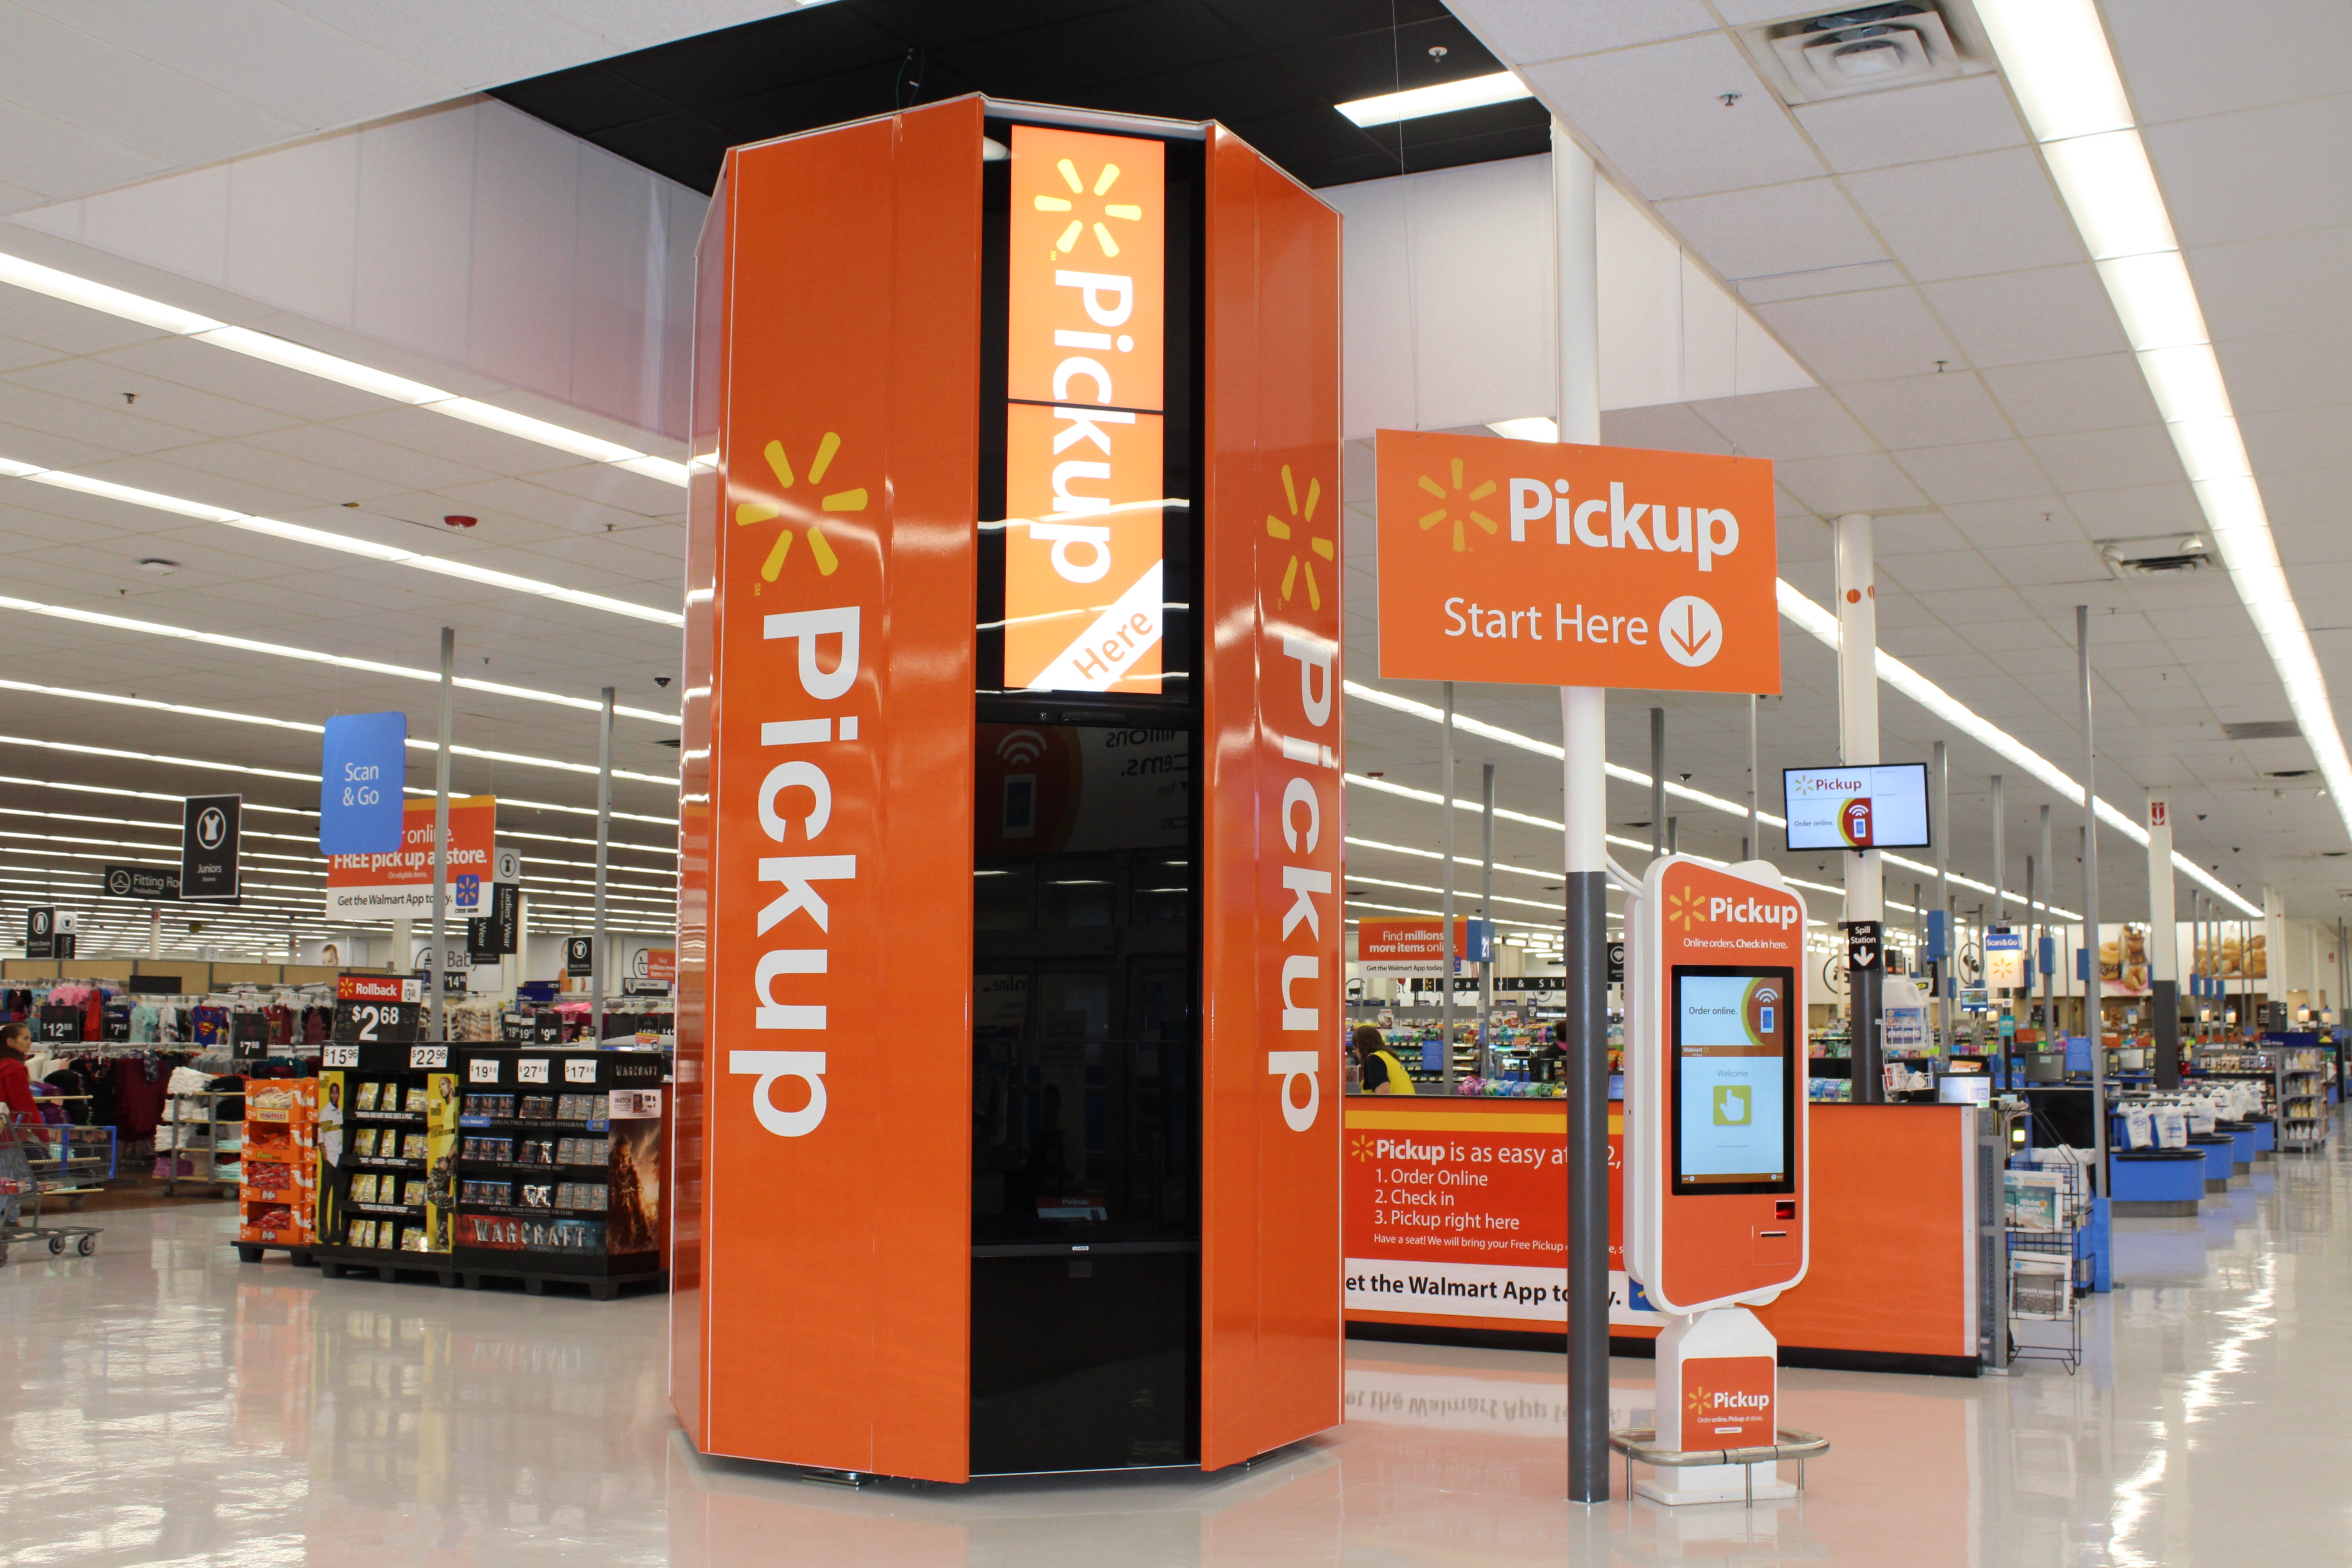 Pickup Towers can accommodate any item smaller than a medium-sized microwave.